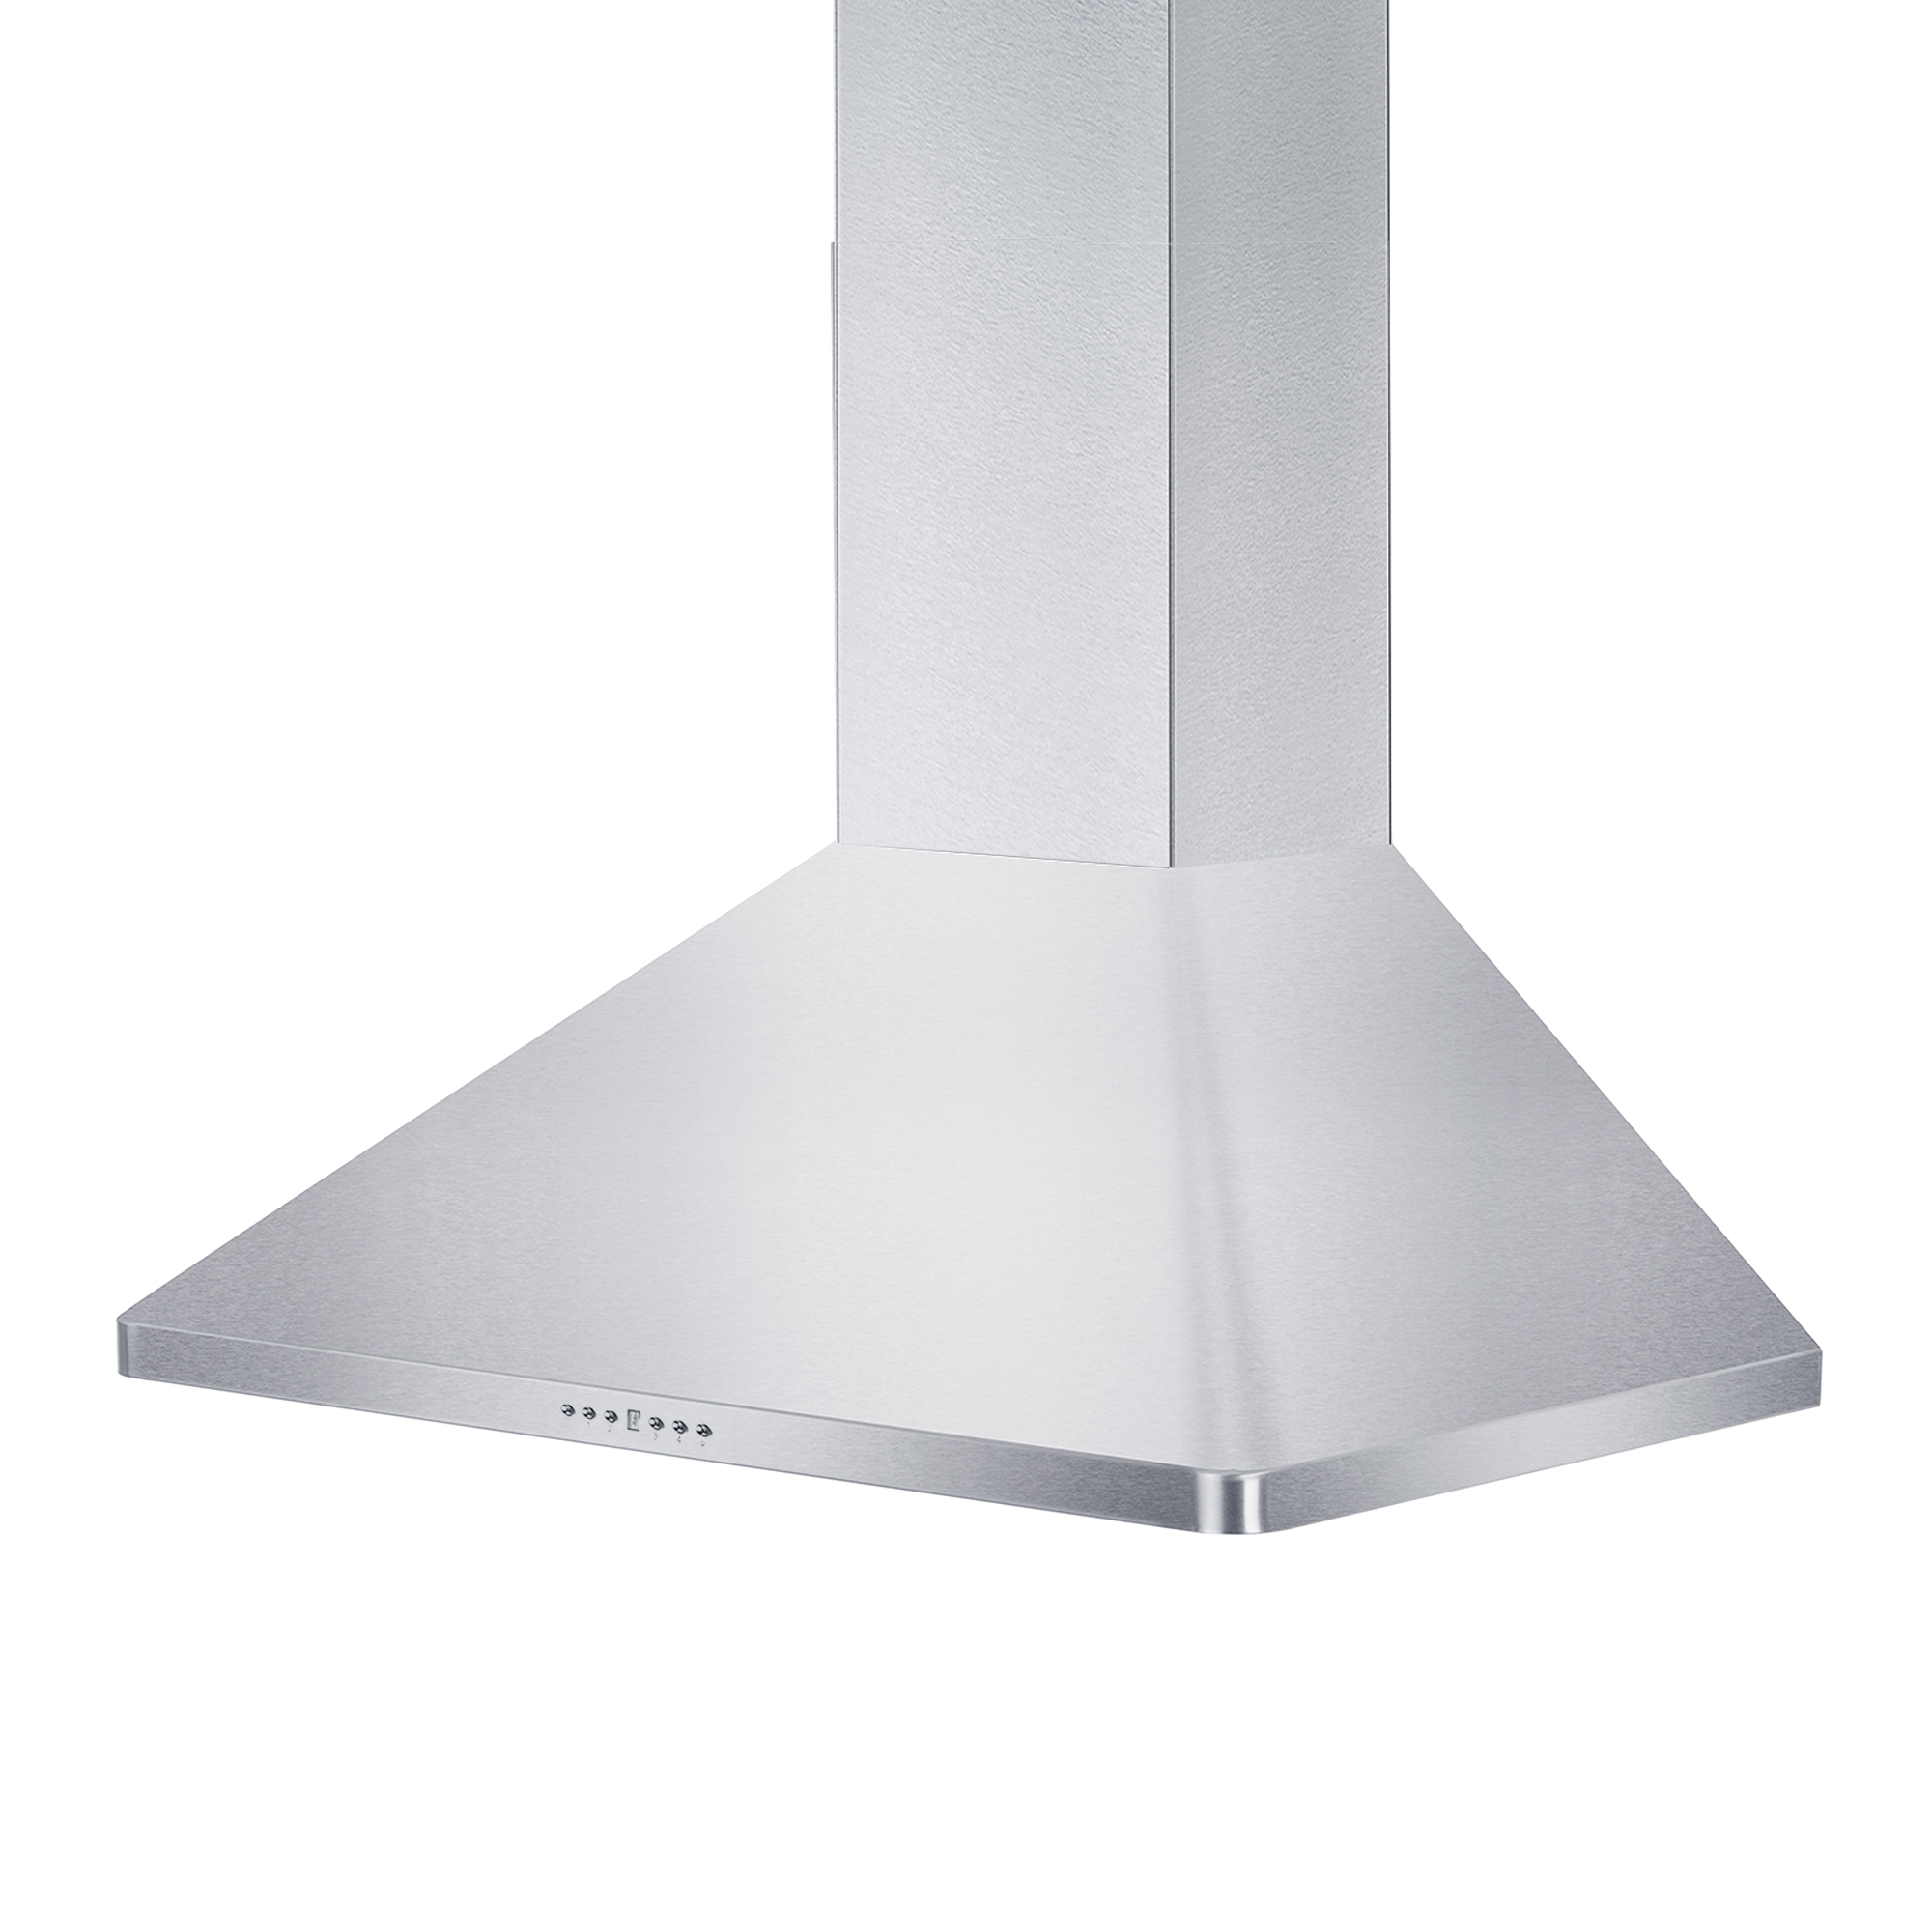 zline-stainless-steel-wall-mounted-range-hood-KF1-top.jpg